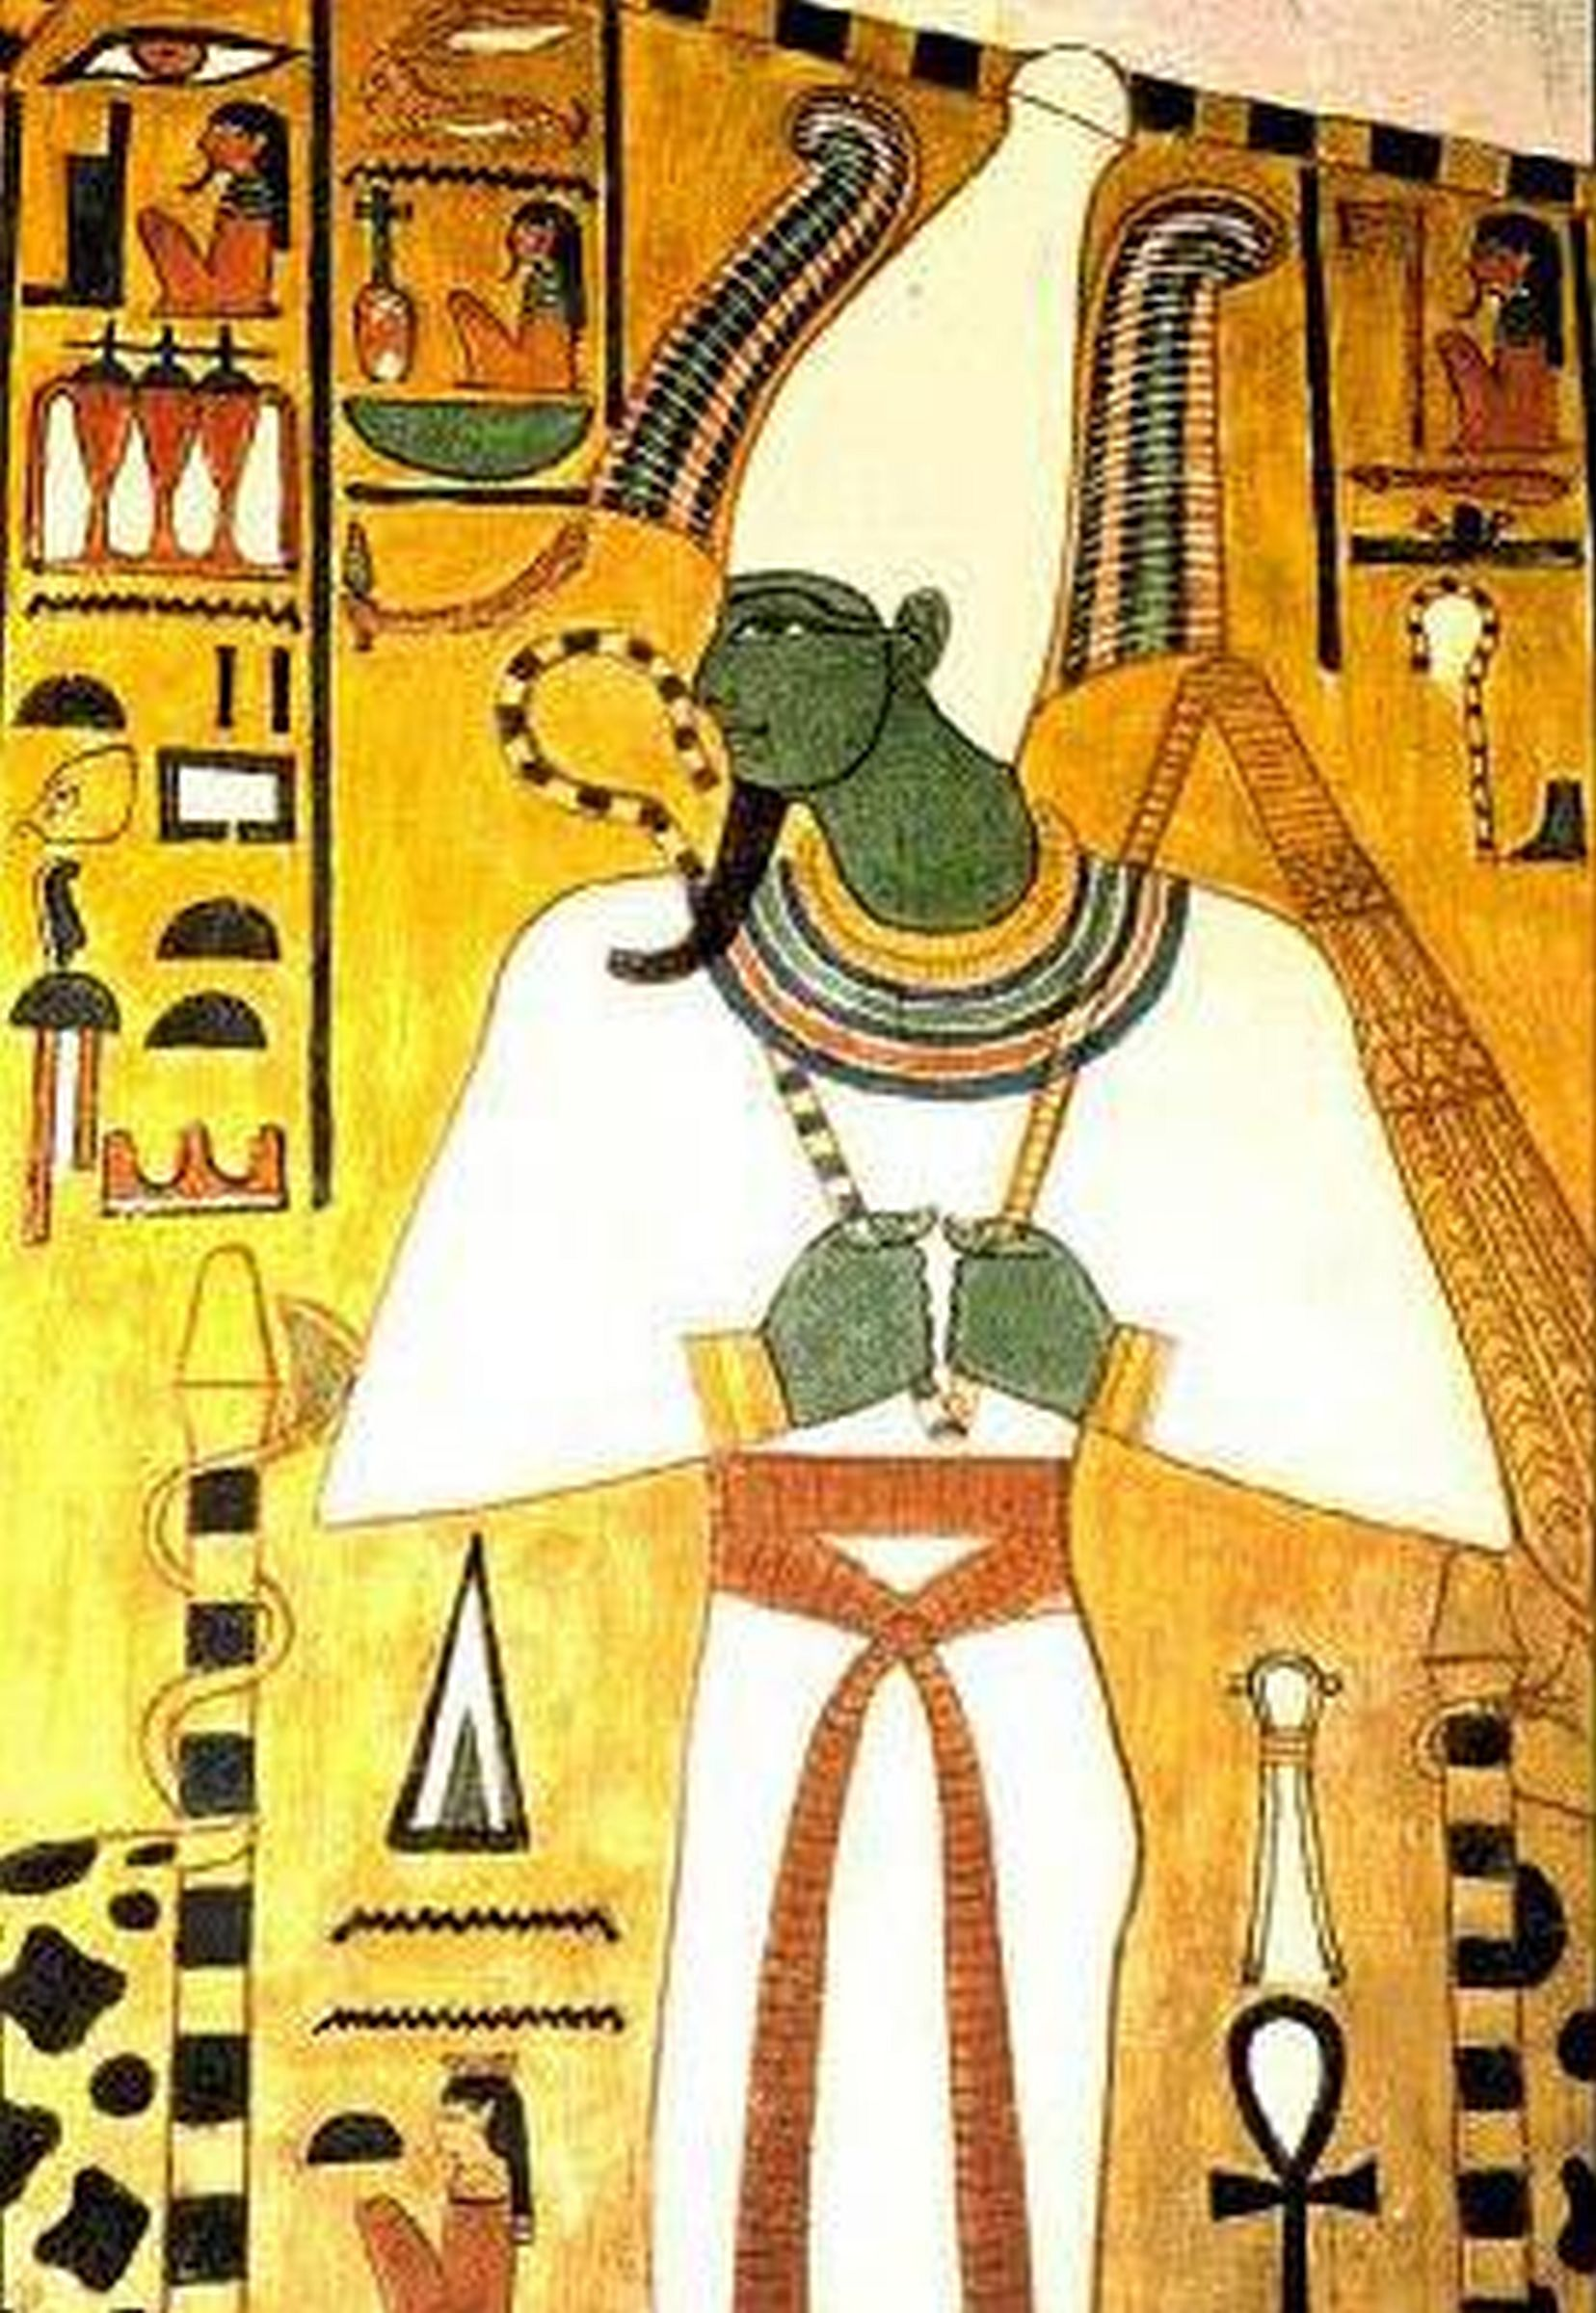 https://i1.wp.com/www.esotericmeanings.com/wp-content/uploads/2016/01/osiris_egyptian_god.jpg